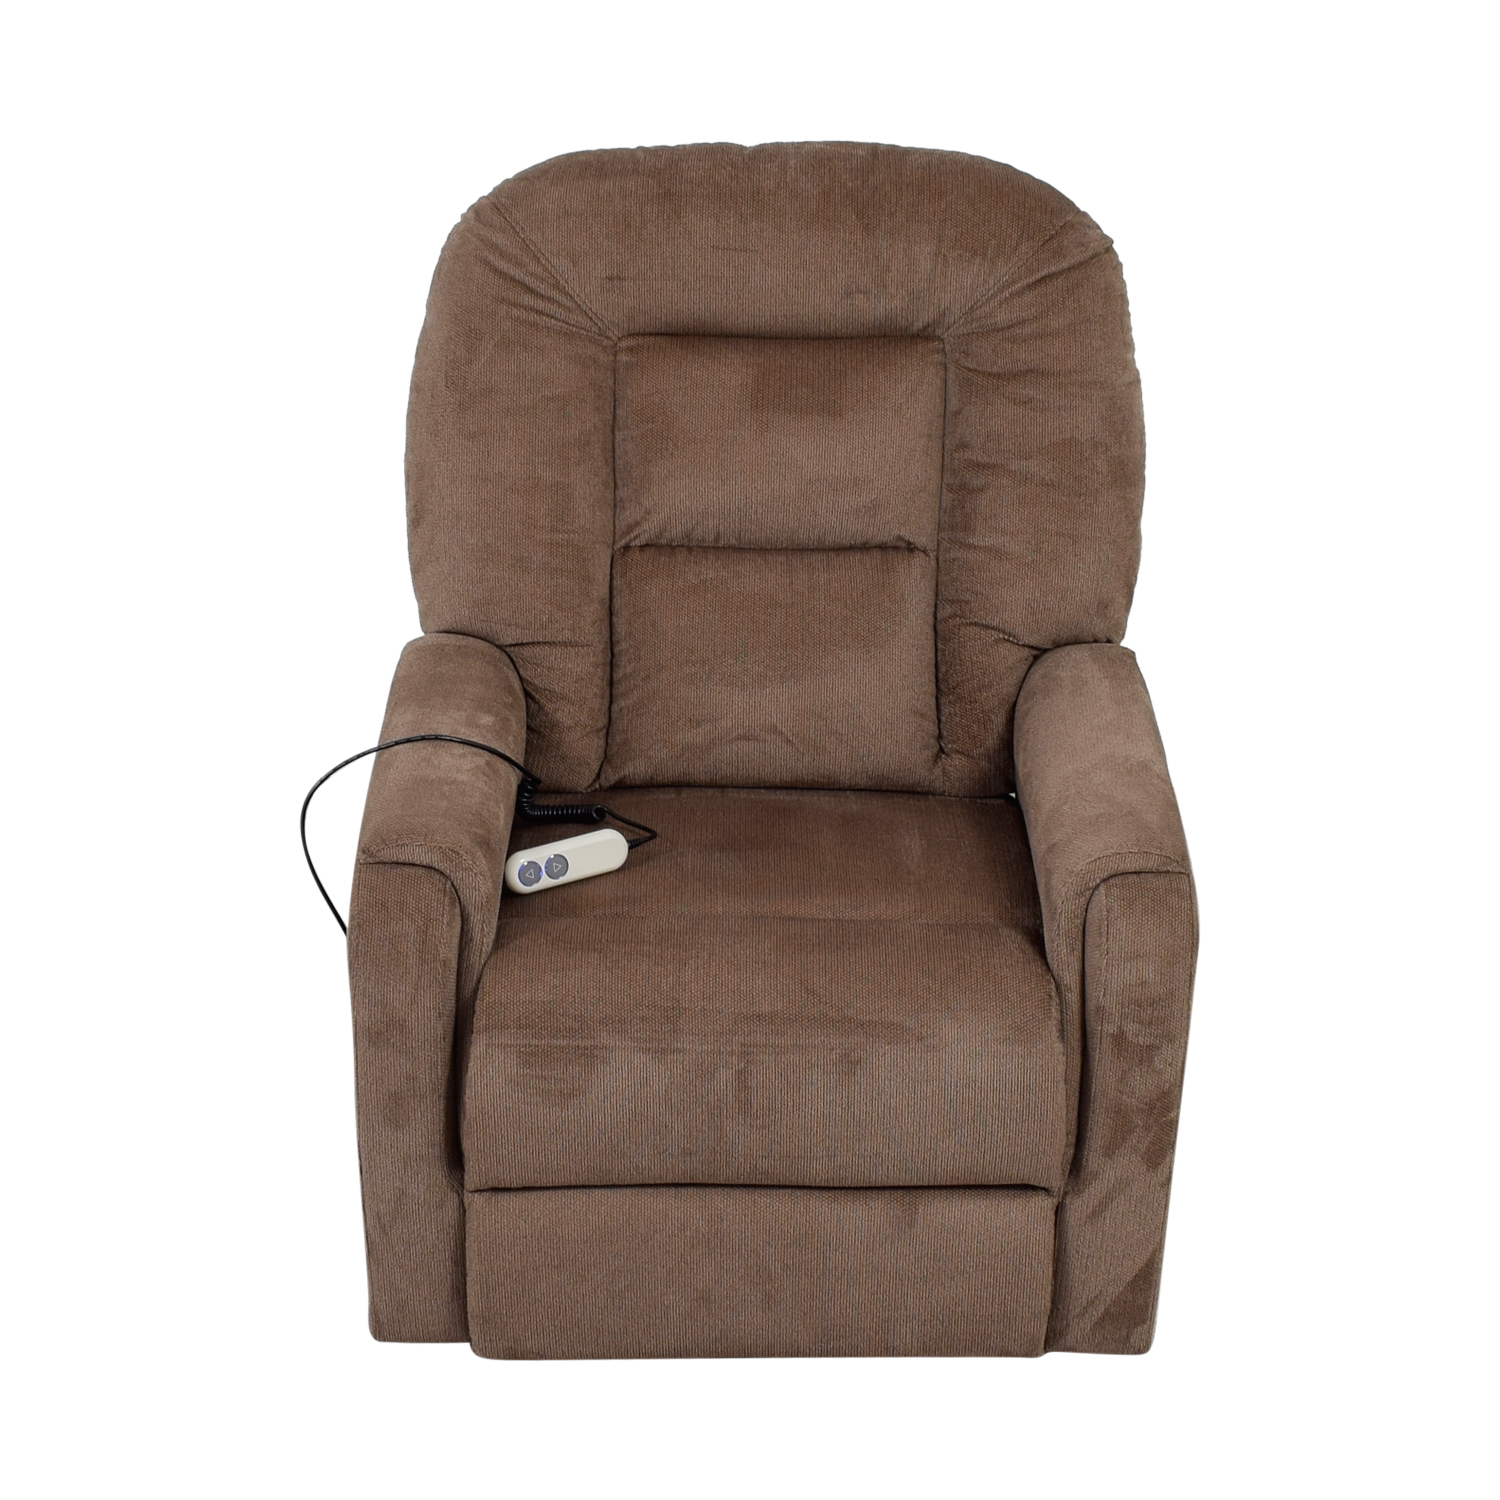 Taupe Lift to Standing Position Recliner Chair second hand